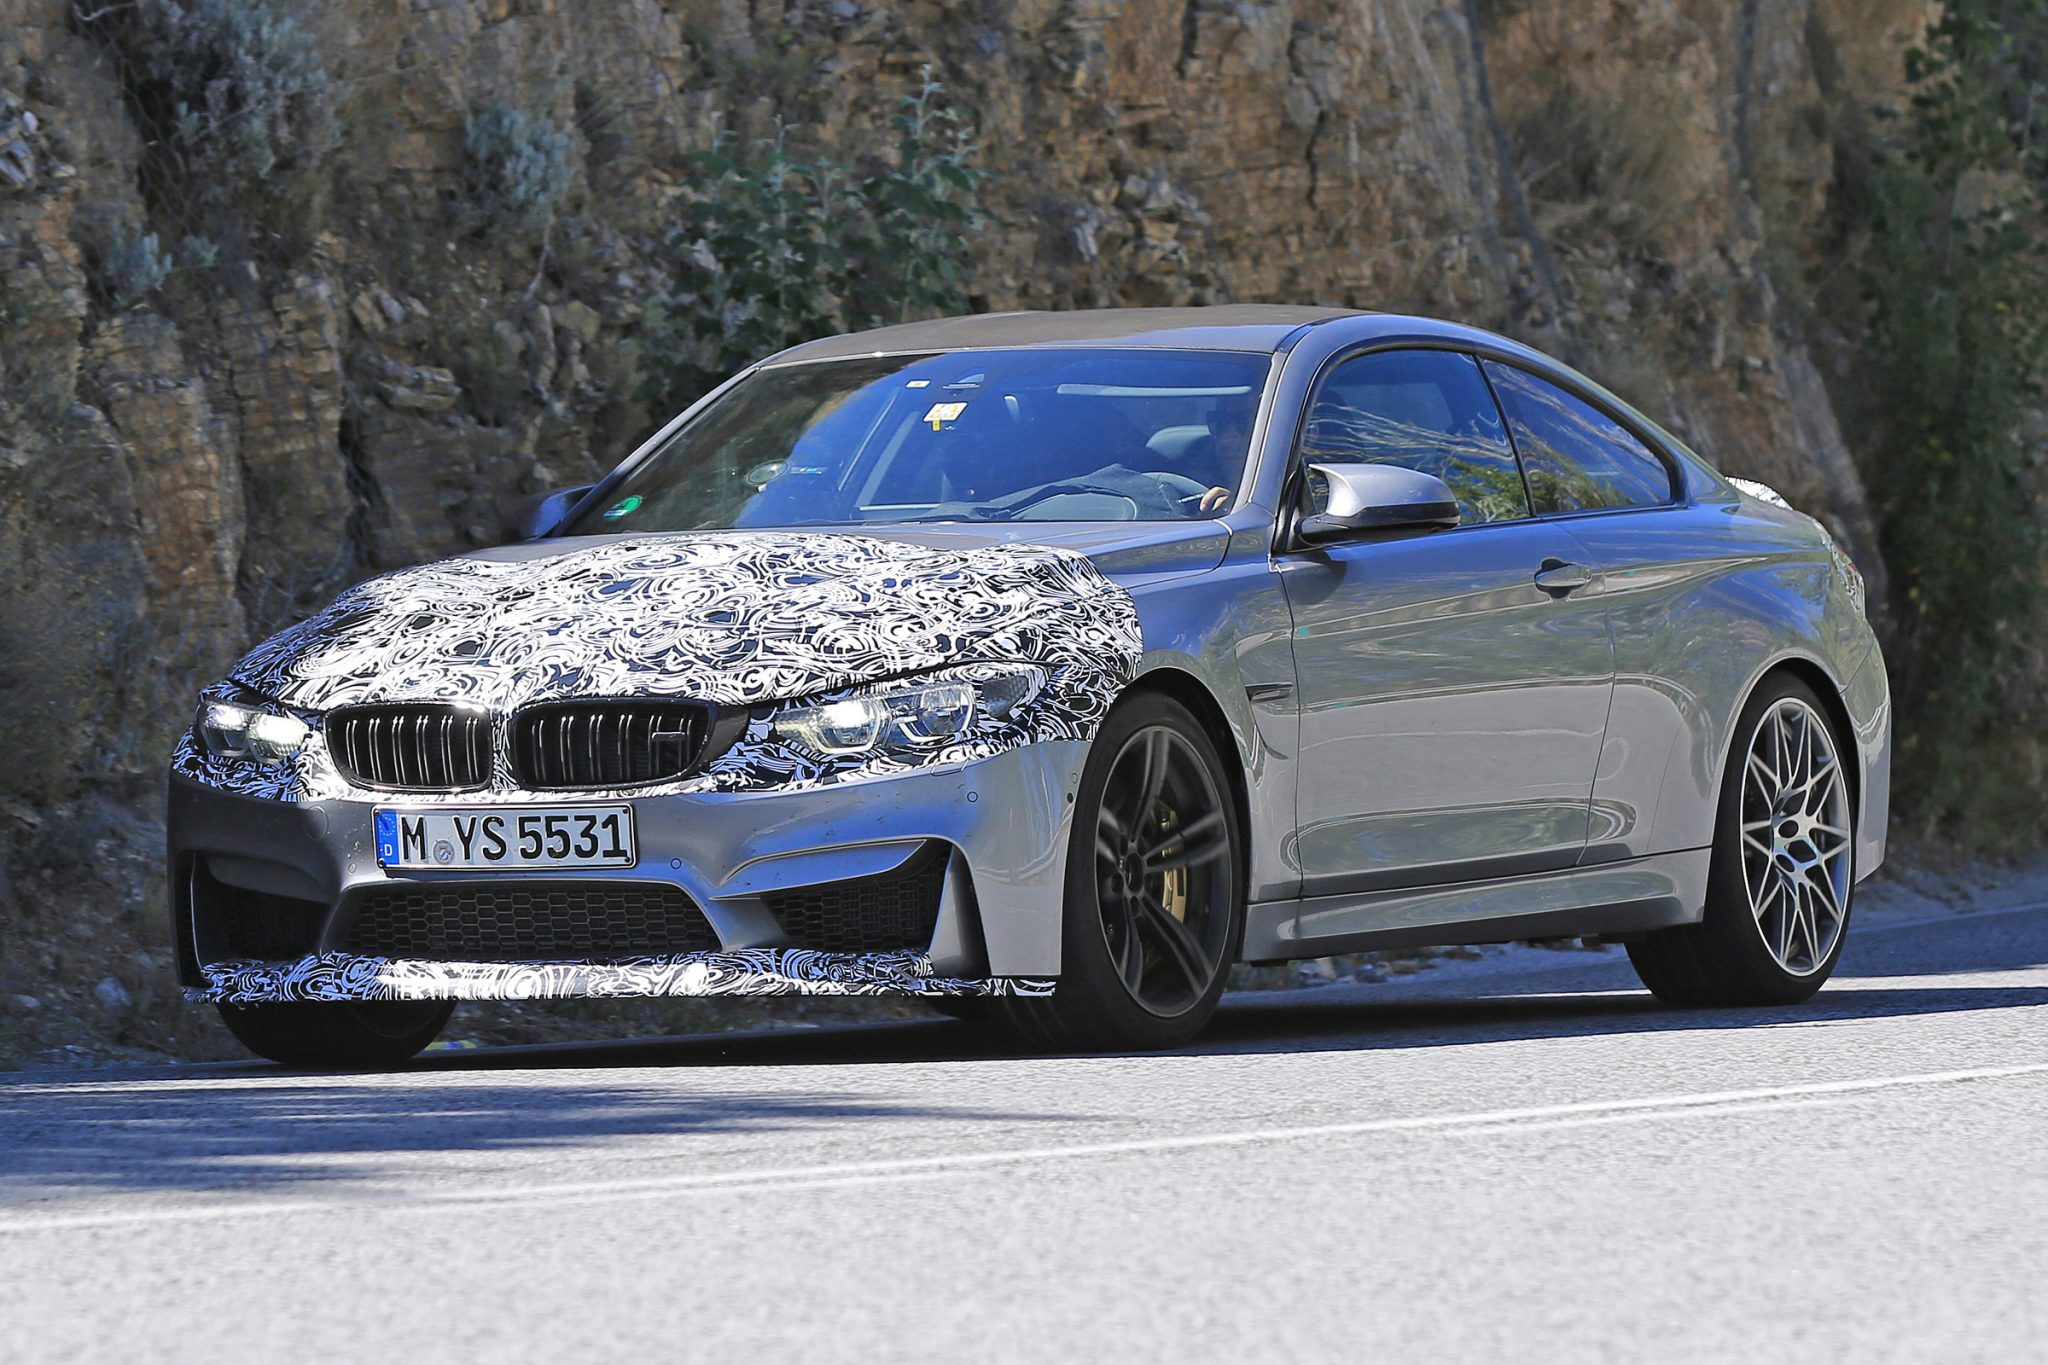 Bmw X3 2017 Interior >> 2017 BMW M4 Coupe spied with minor updates - ForceGT.com